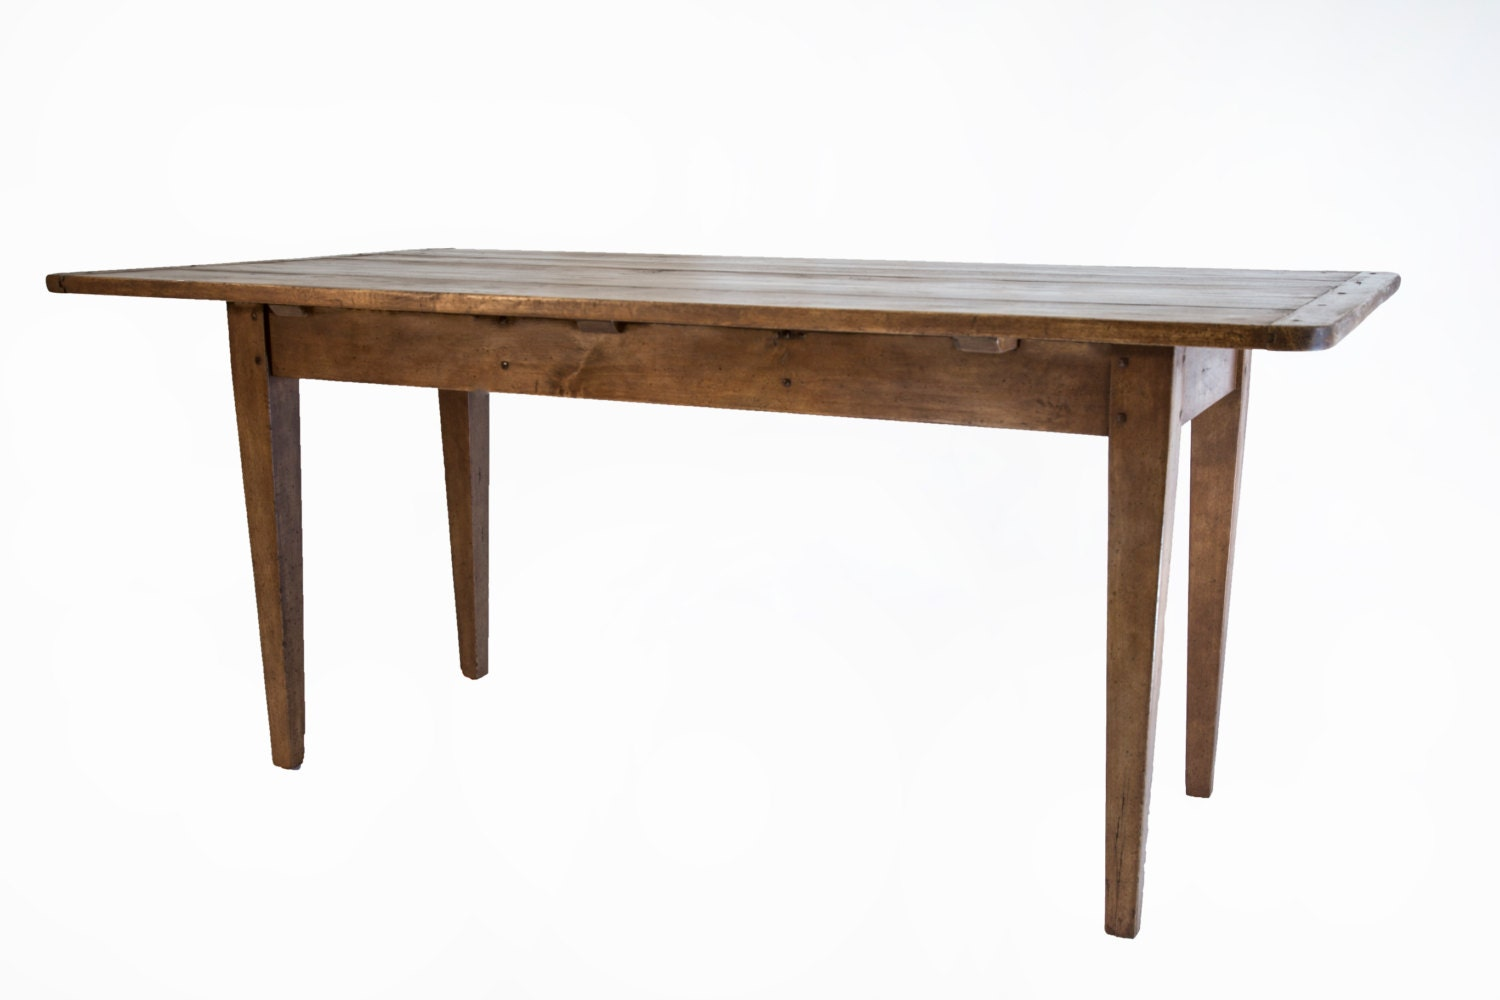 658 Small farmhouse table for kitchen banquette by SuzanneBonham